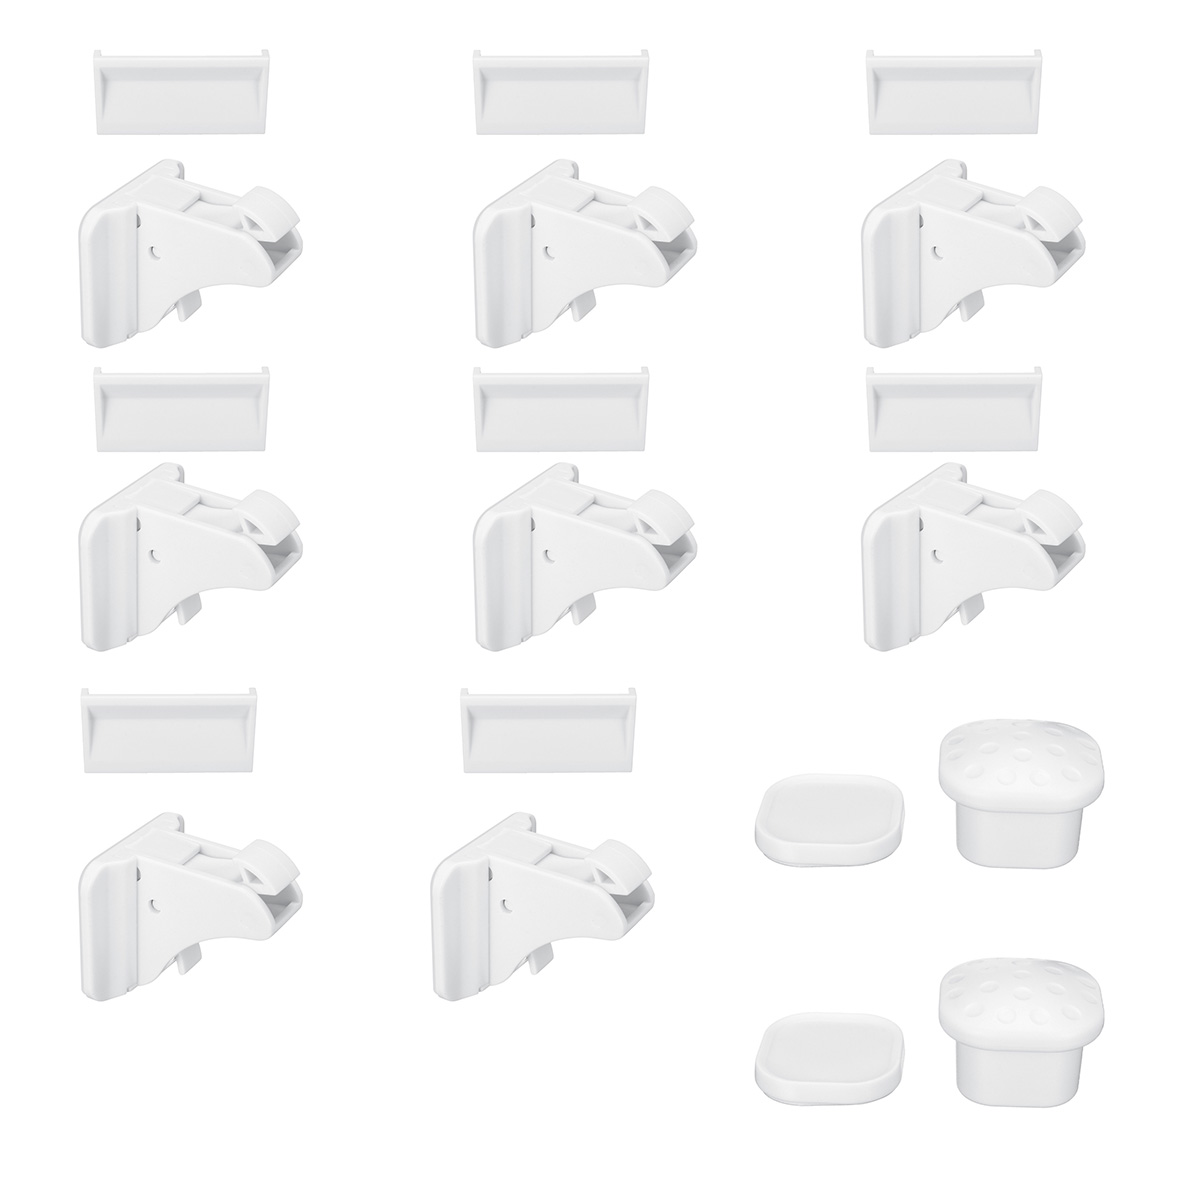 8pcs Lock+2 Key Magnetic Child Lock Baby Safety Baby Protection Cabinet Door Lock Kids Drawer Locker Security Invisible Locks